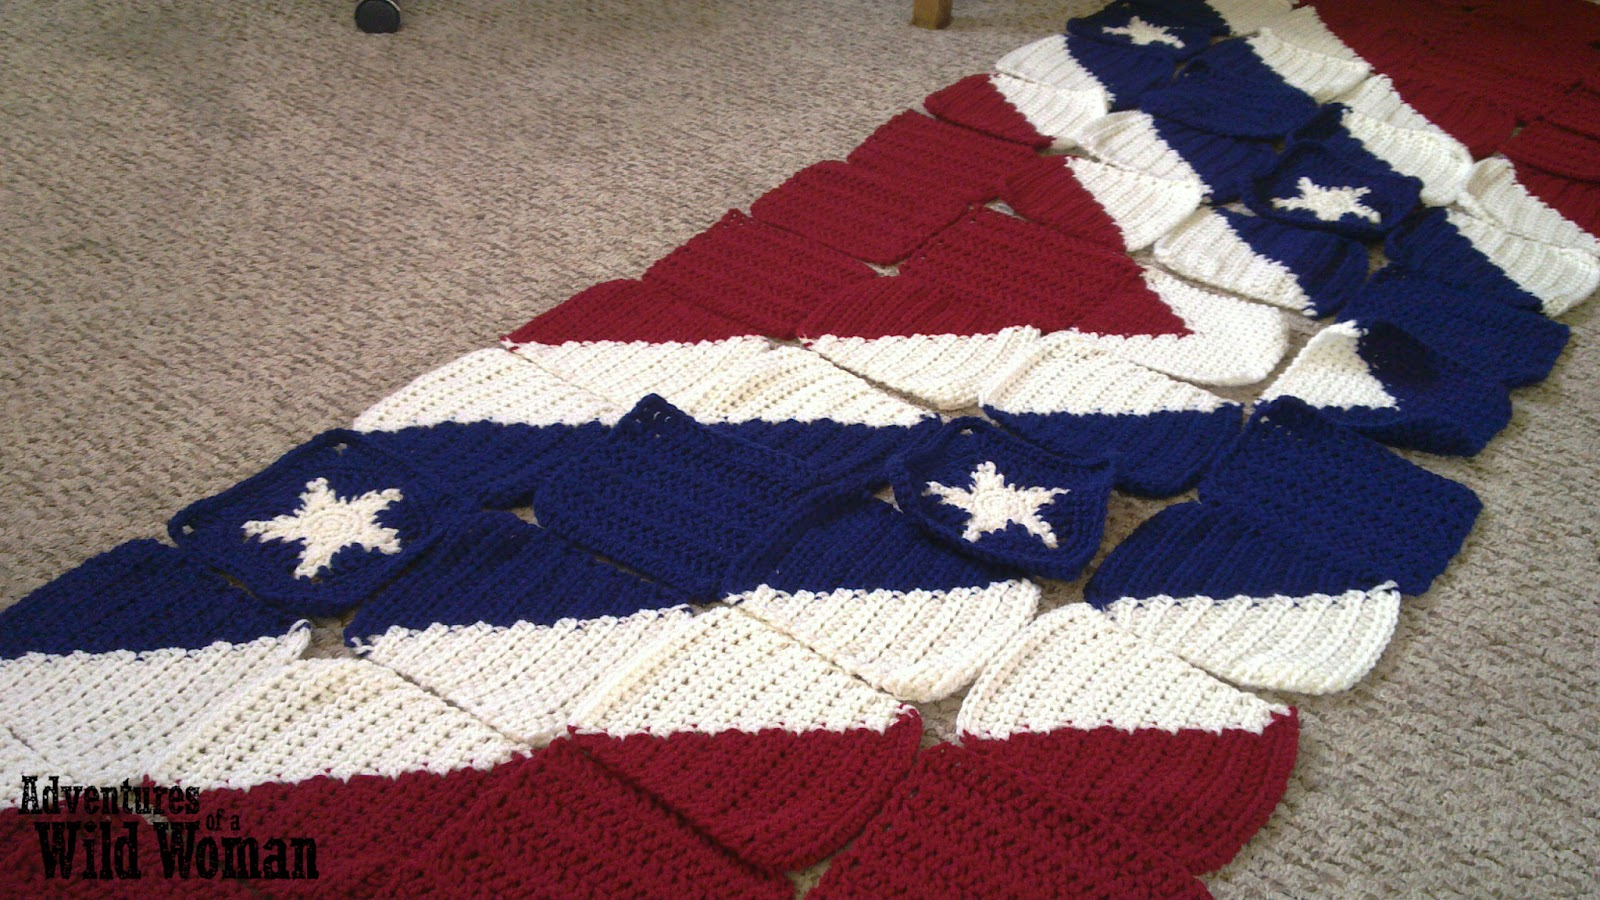 Adventures Of A Wild Woman Crochet Confederate Flag Blanket